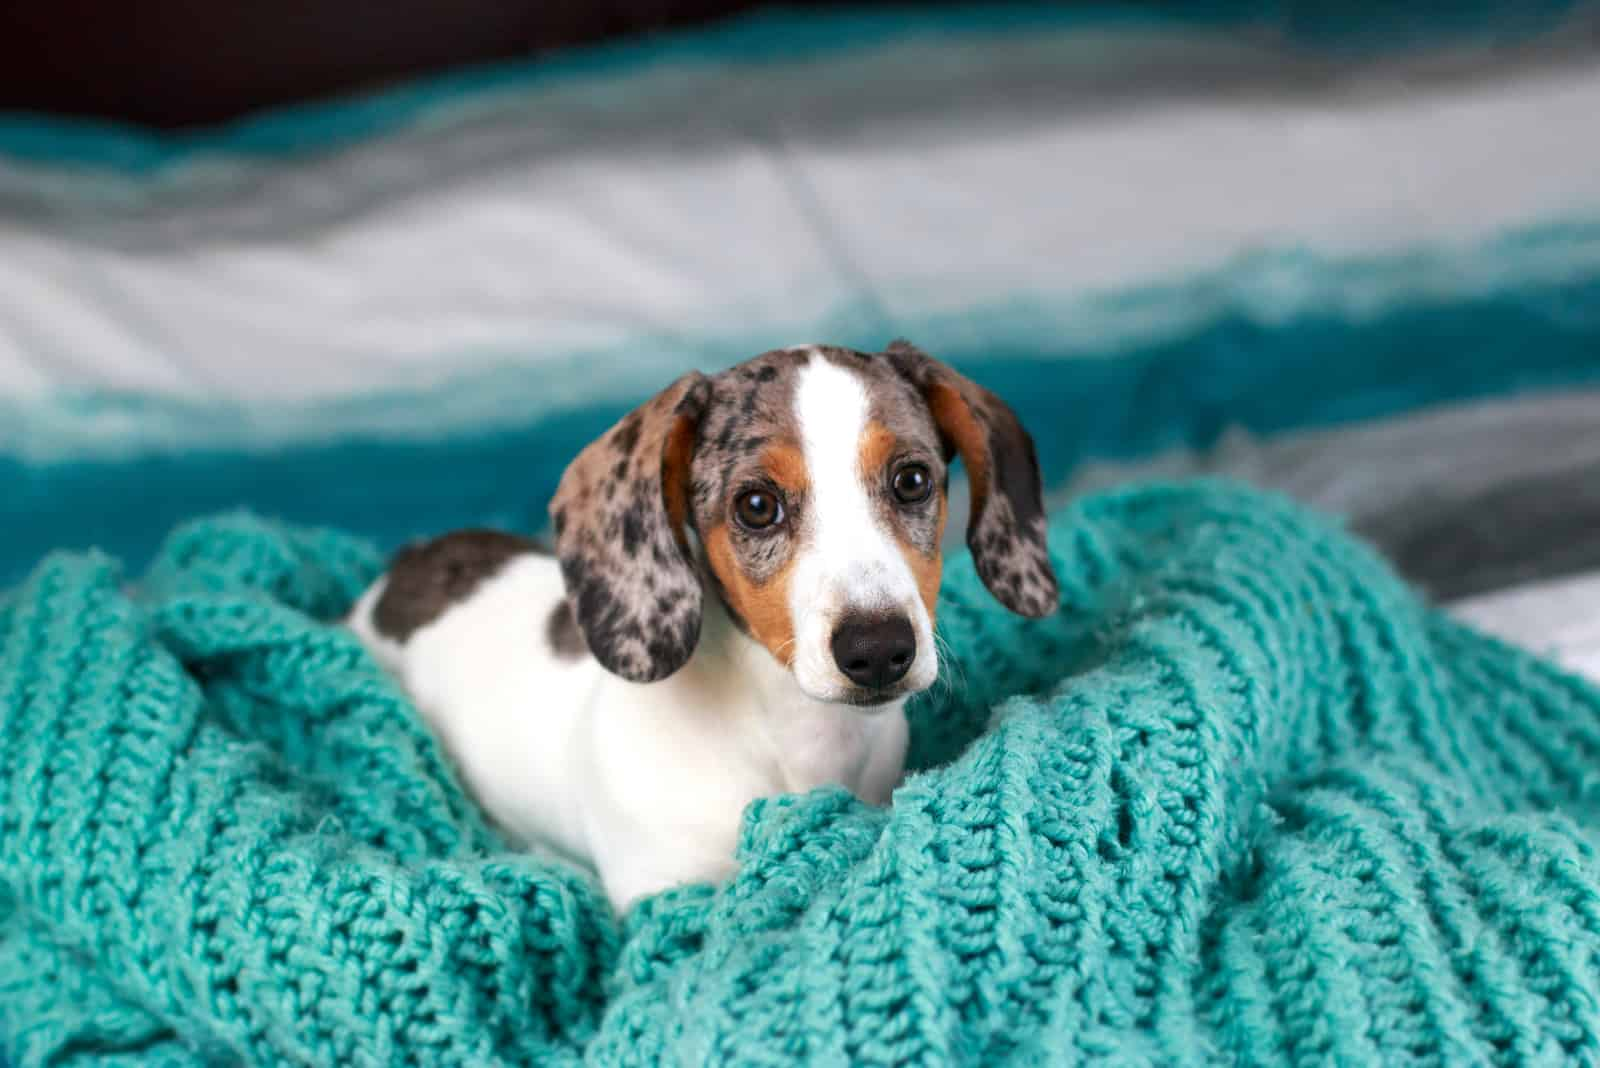 cute little dachshund puppy dog laying down on his blue cozy blanket looking up